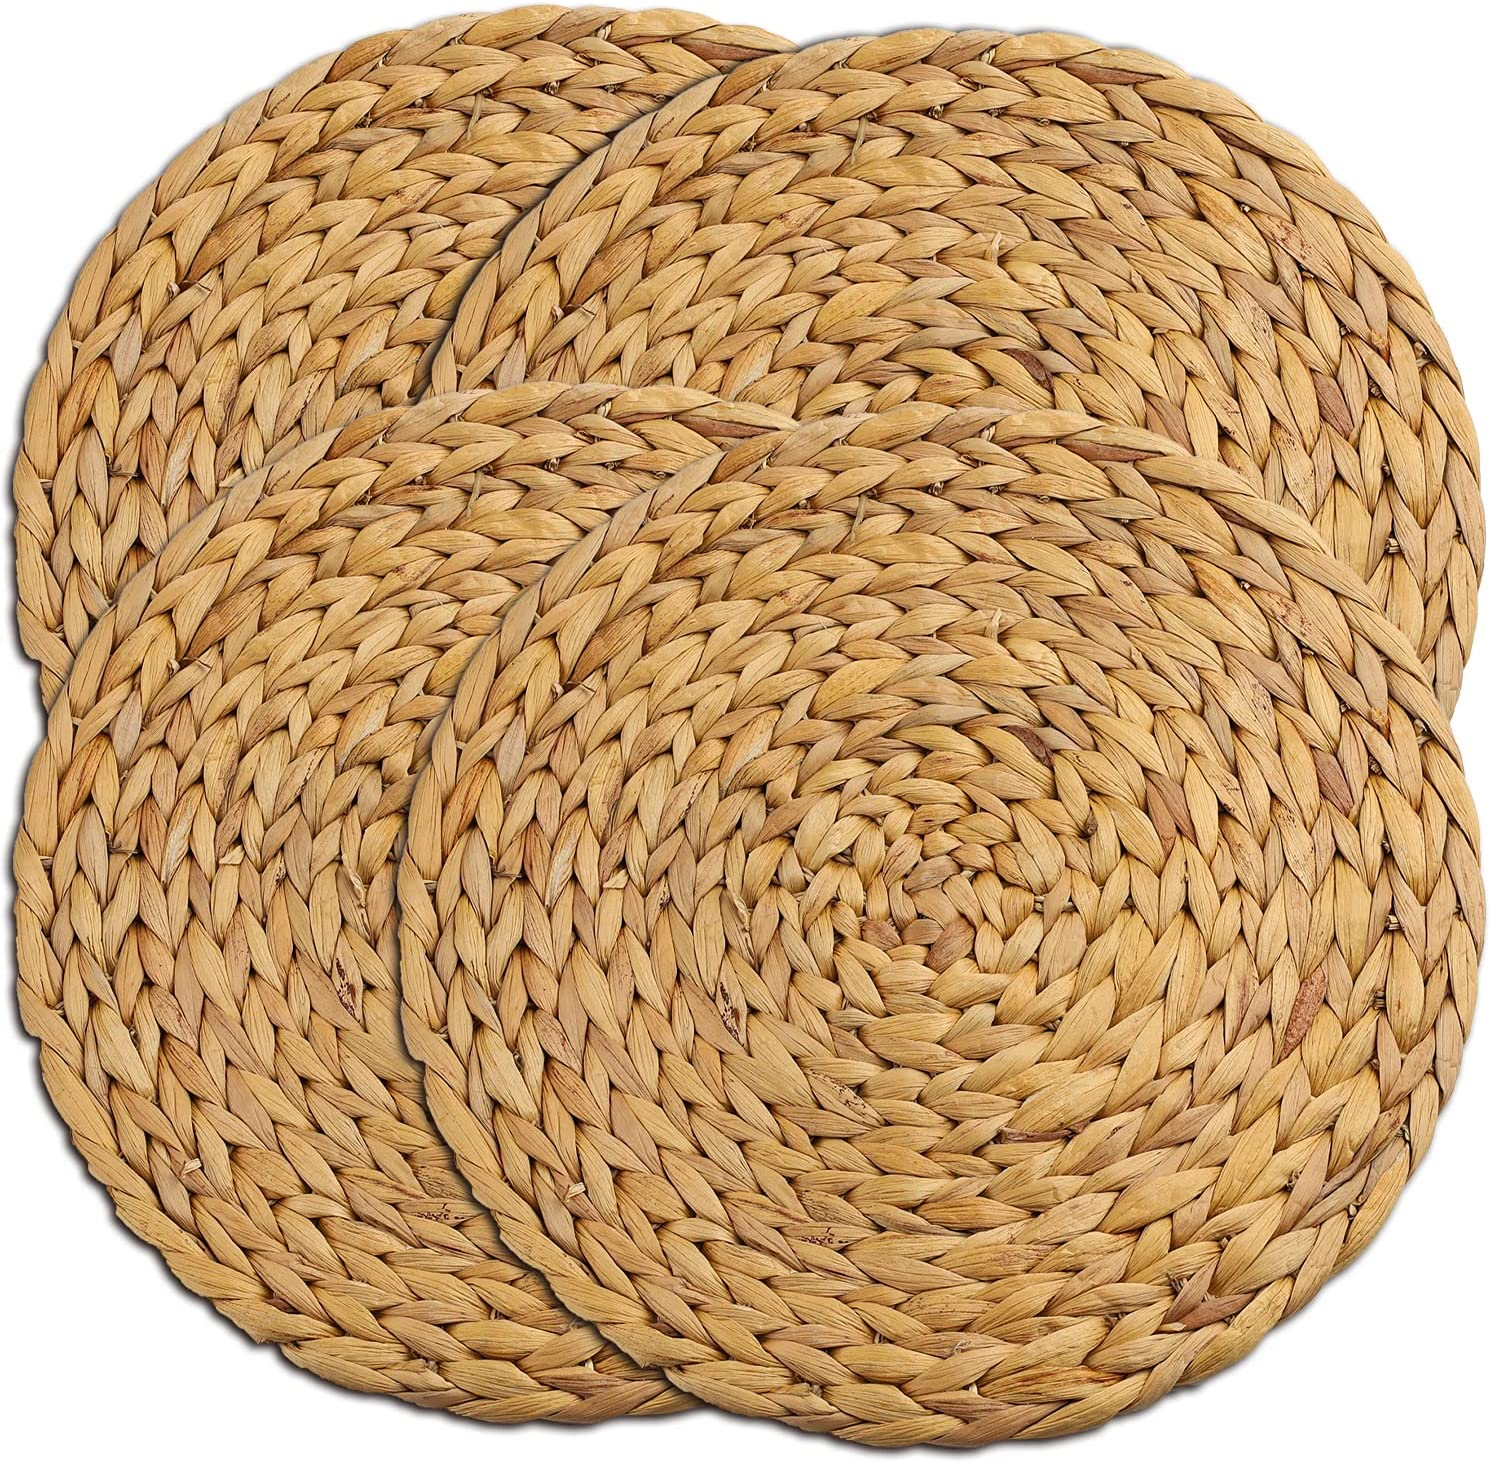 Woven Placemats Ranking TOP1 Large Round Dining [Alternative dealer] Natural for Wicker